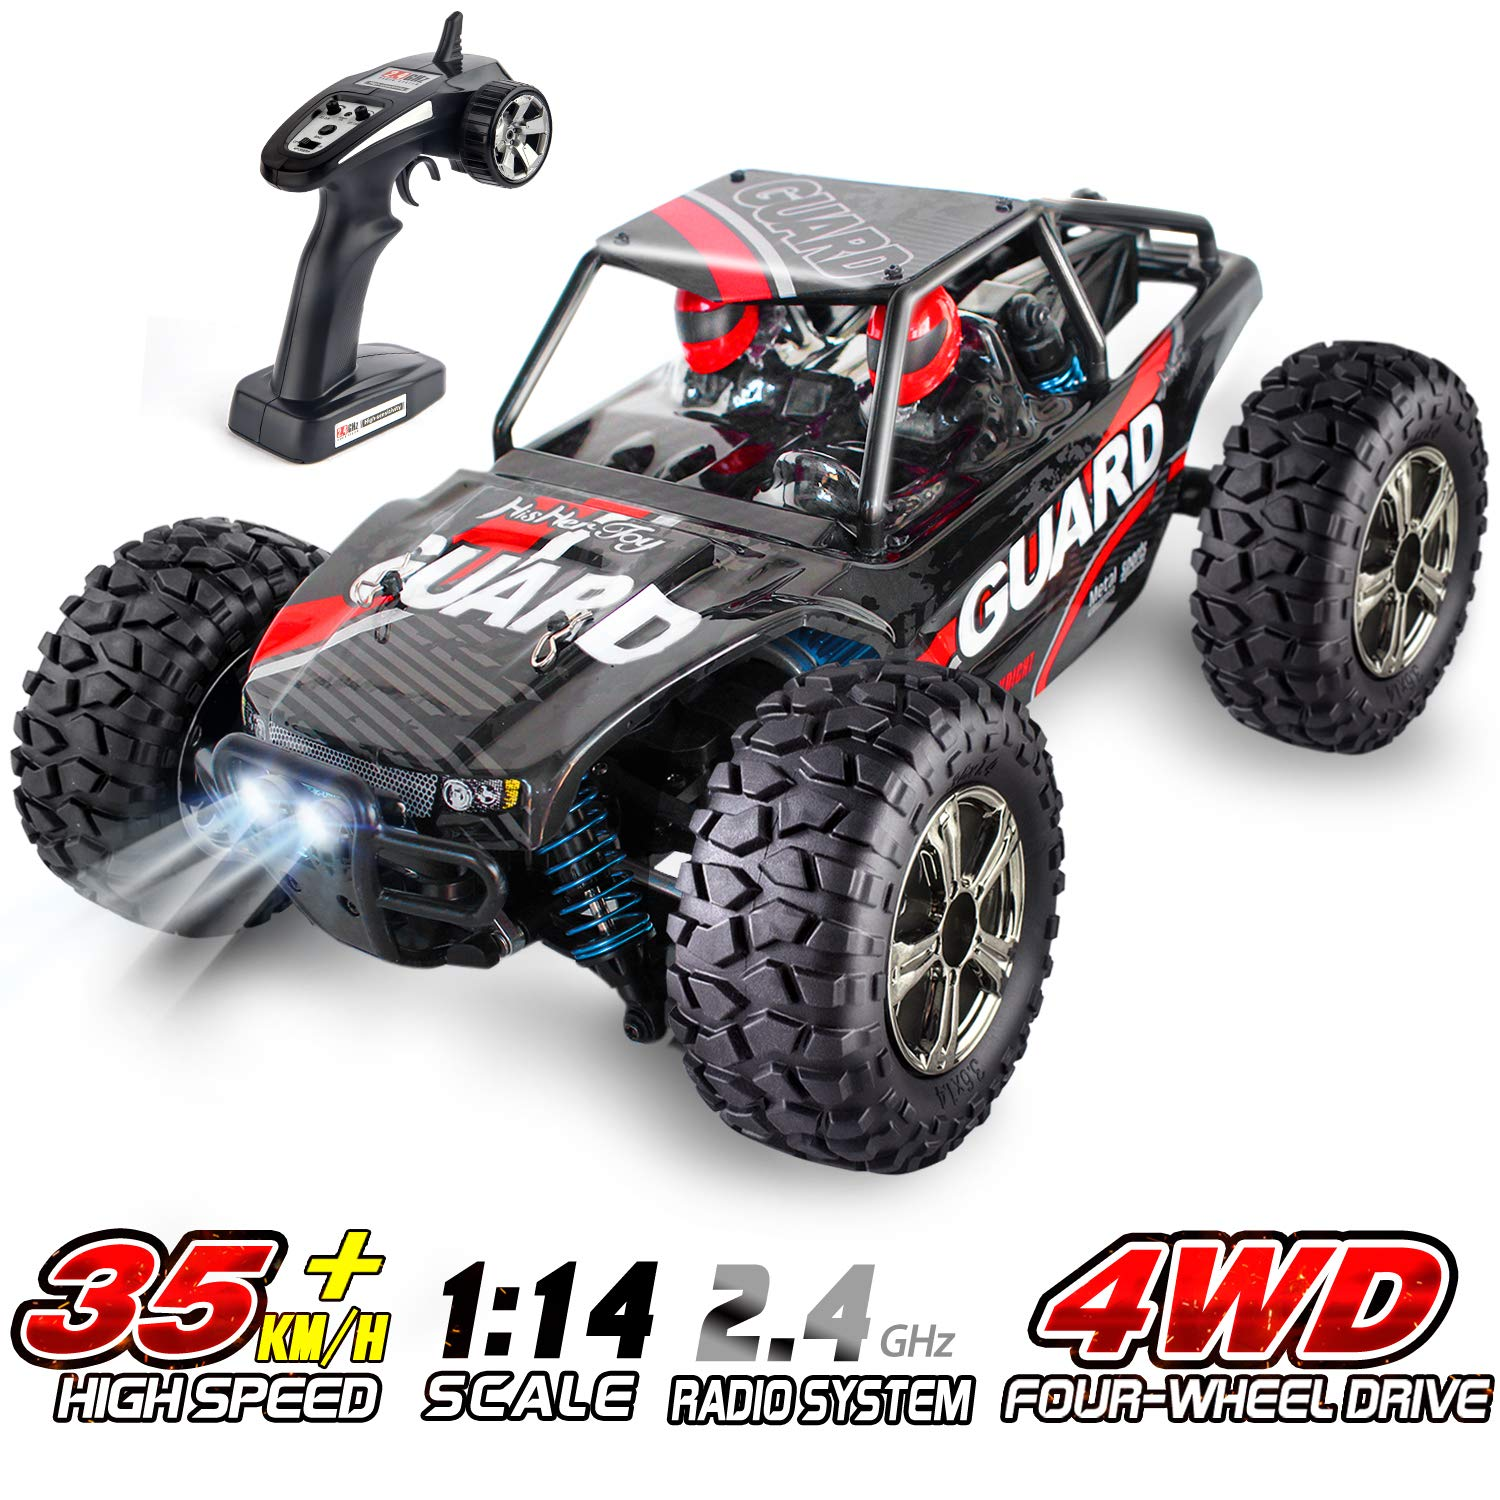 Rc Car For Adults And Kids Hishertoy Remote Control Truck 1 14 Scale 4wd 2 4 Ghz 35km H High Speed All Terrain Rc Car With 2 Headlights Rechargeable Remote Control Car For Boys Girls